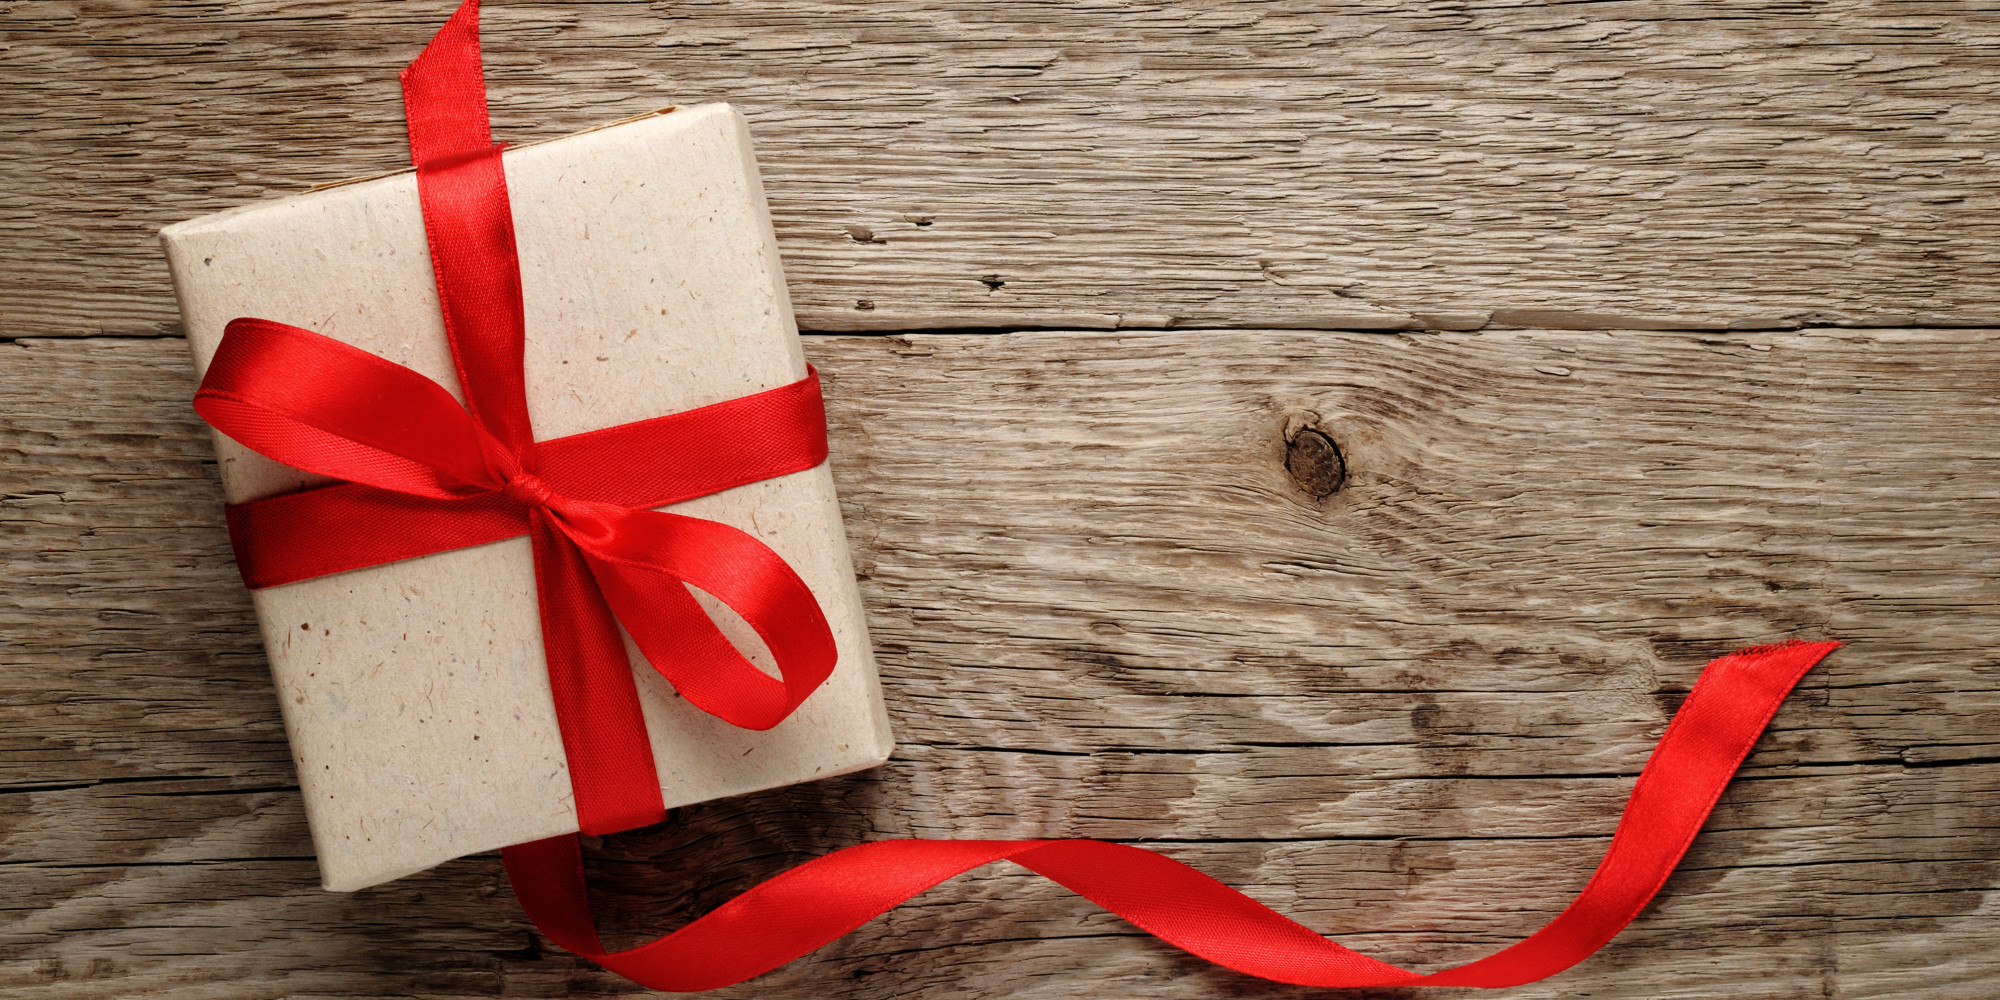 10 Great Gift Ideas for Men